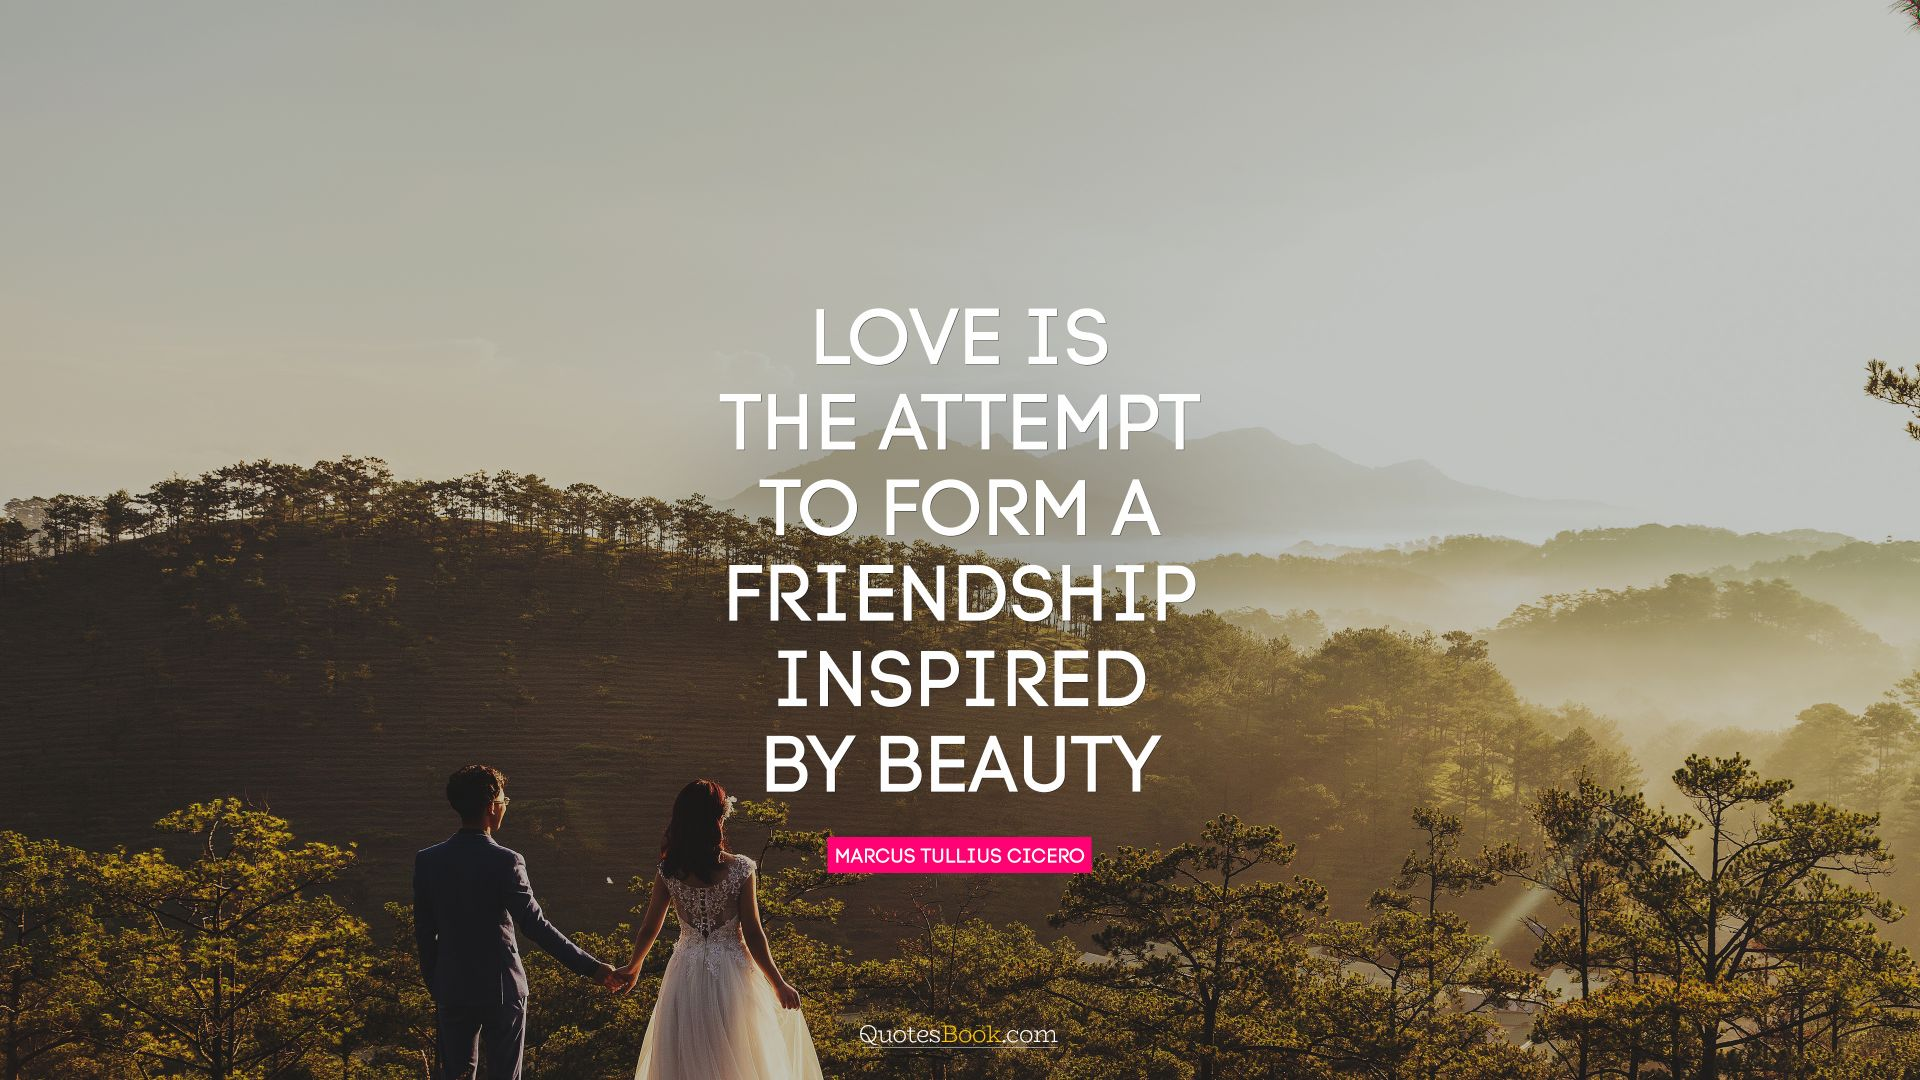 Love is the attempt to form a friendship inspired by beauty. - Quote by Marcus Tullius Cicero